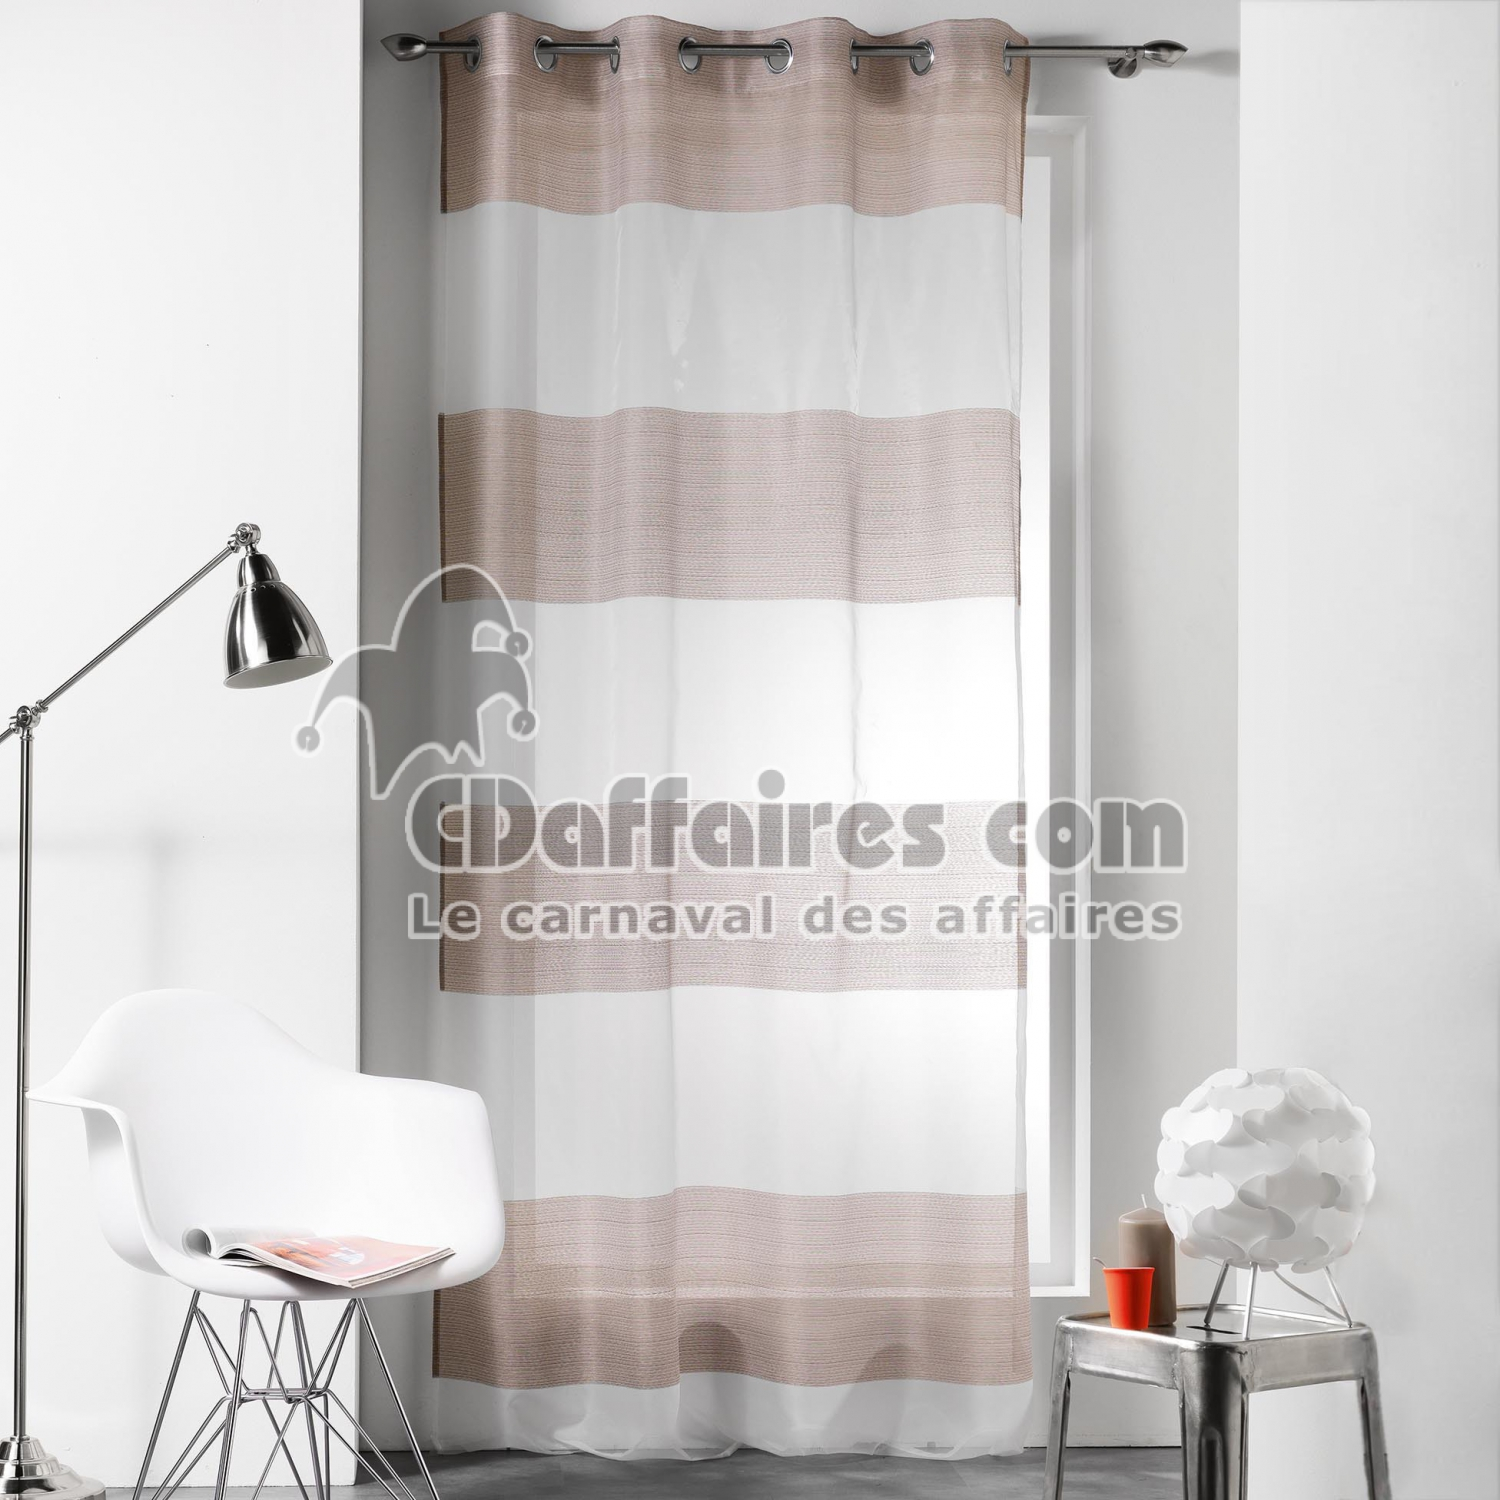 voilages en organza cdaffaires. Black Bedroom Furniture Sets. Home Design Ideas